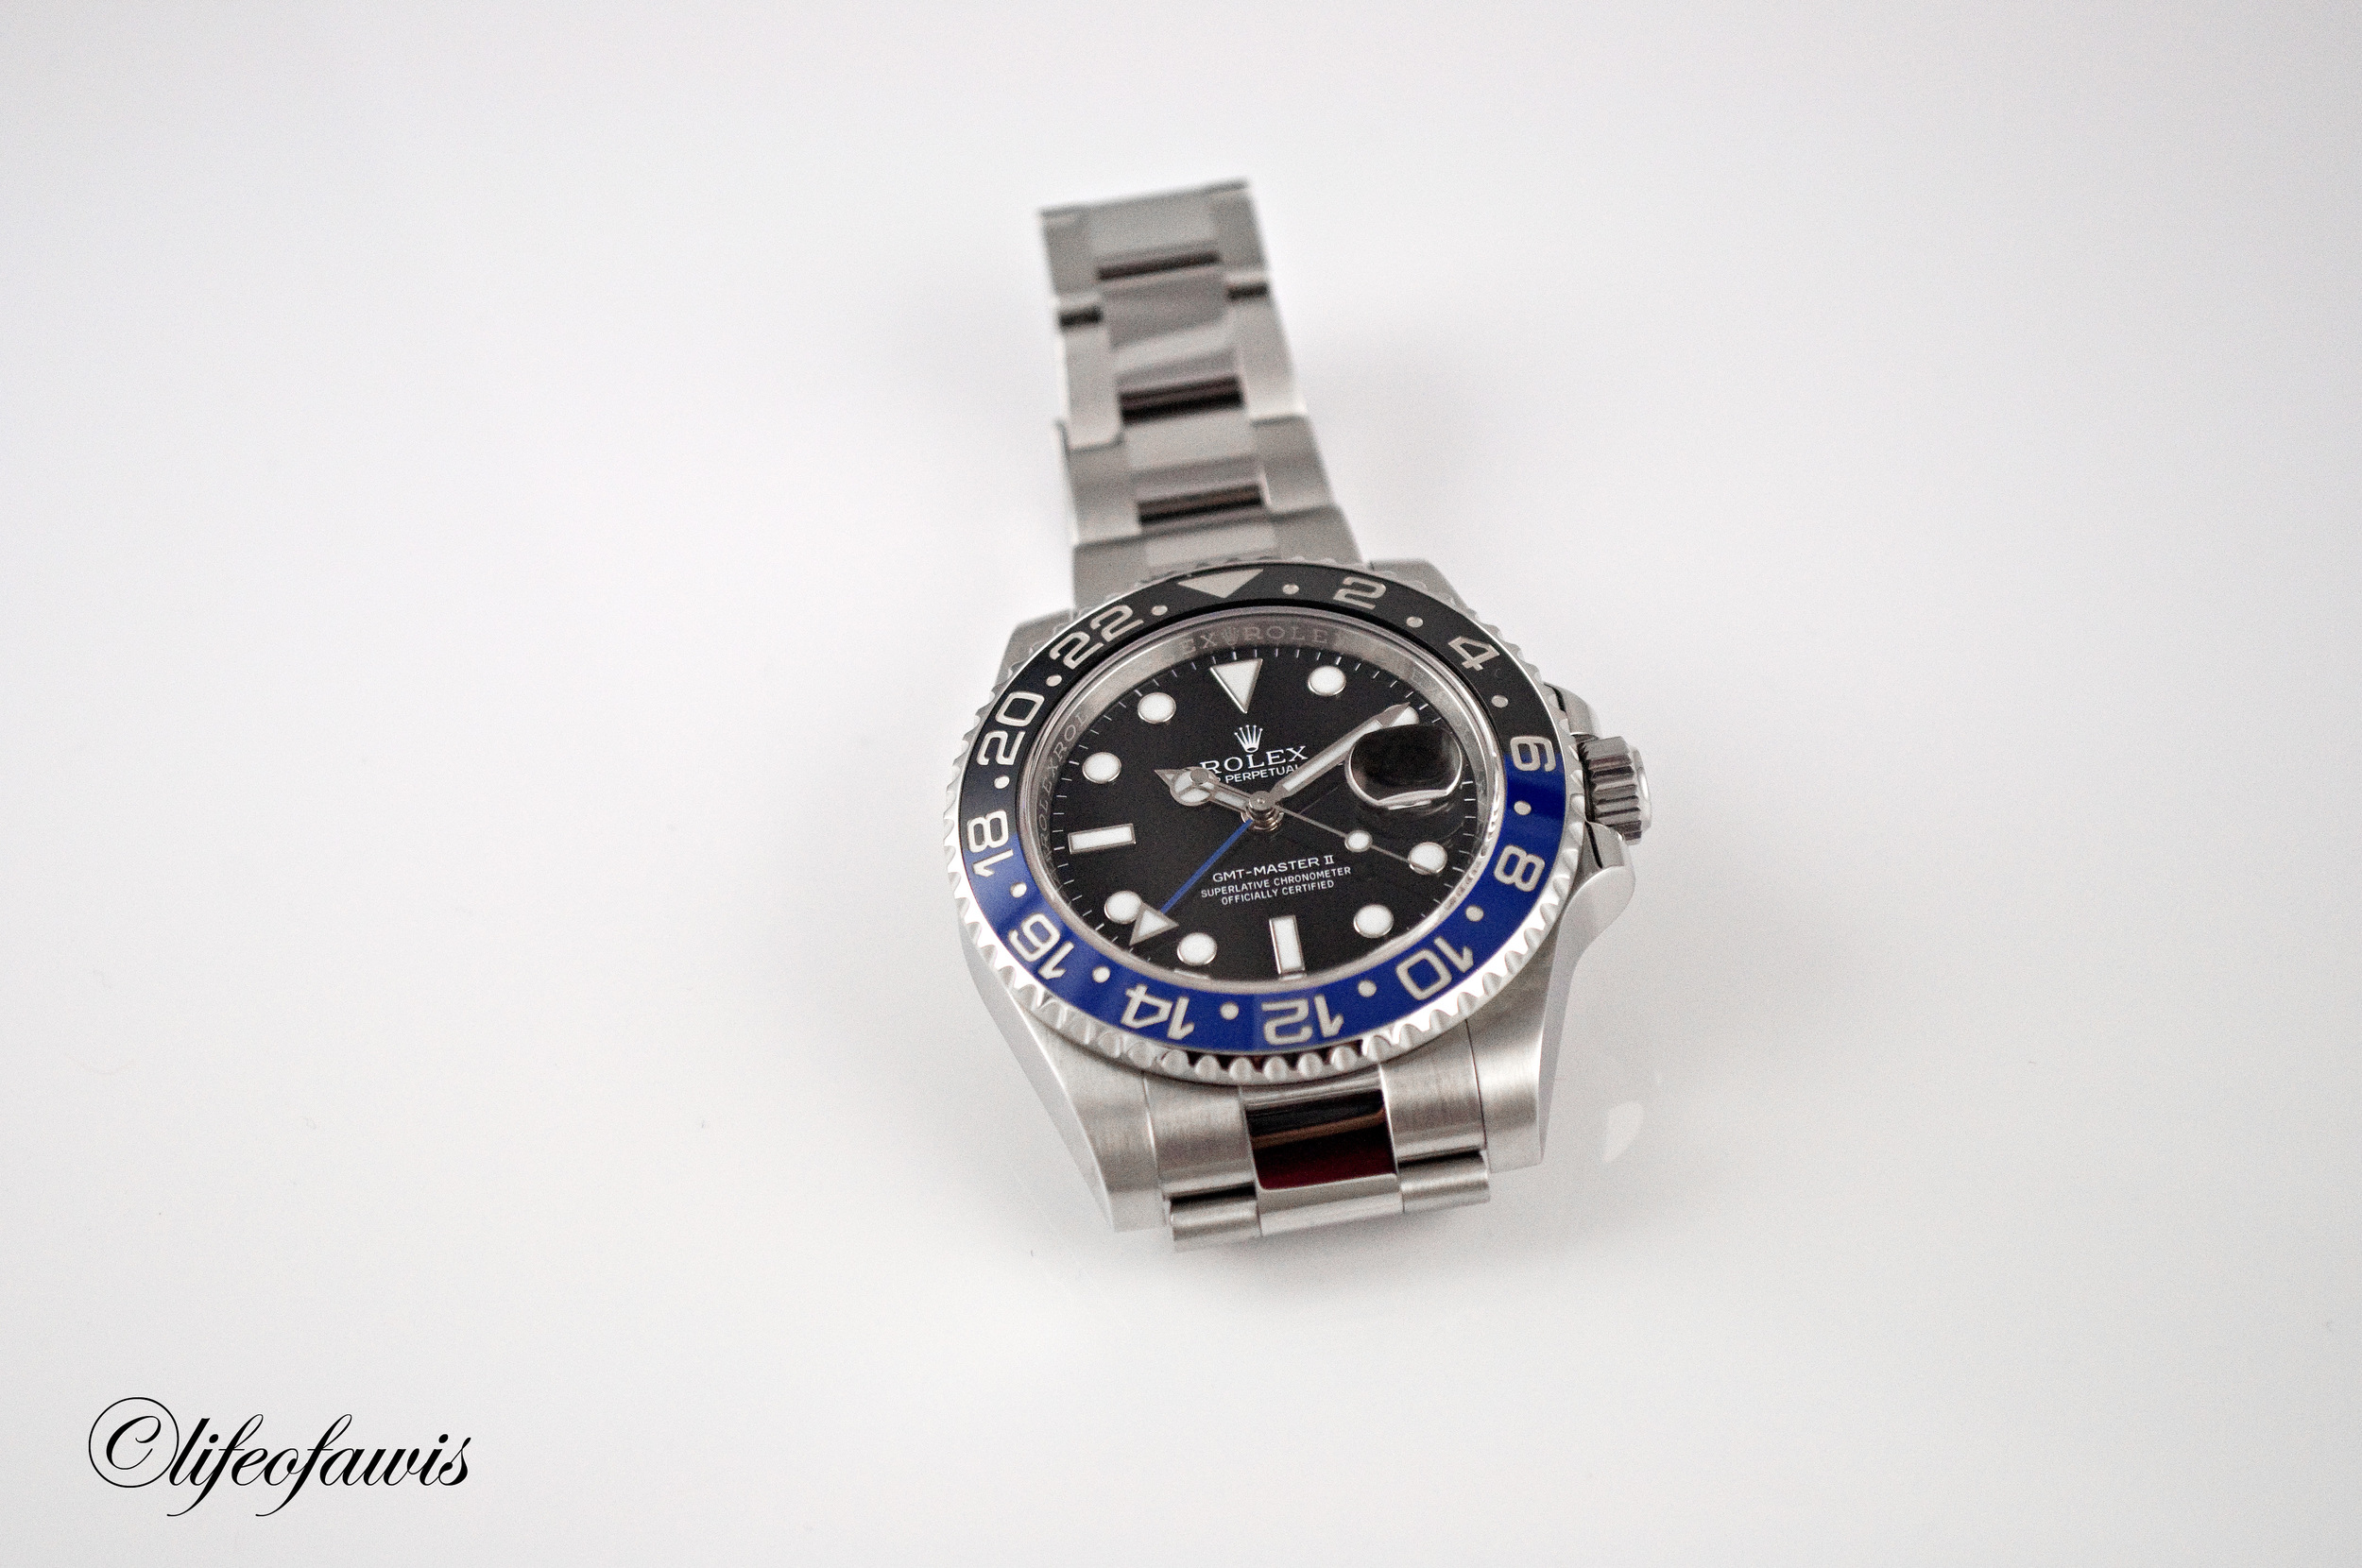 The addition of the blue on the bezel really makes the entire watch pop.